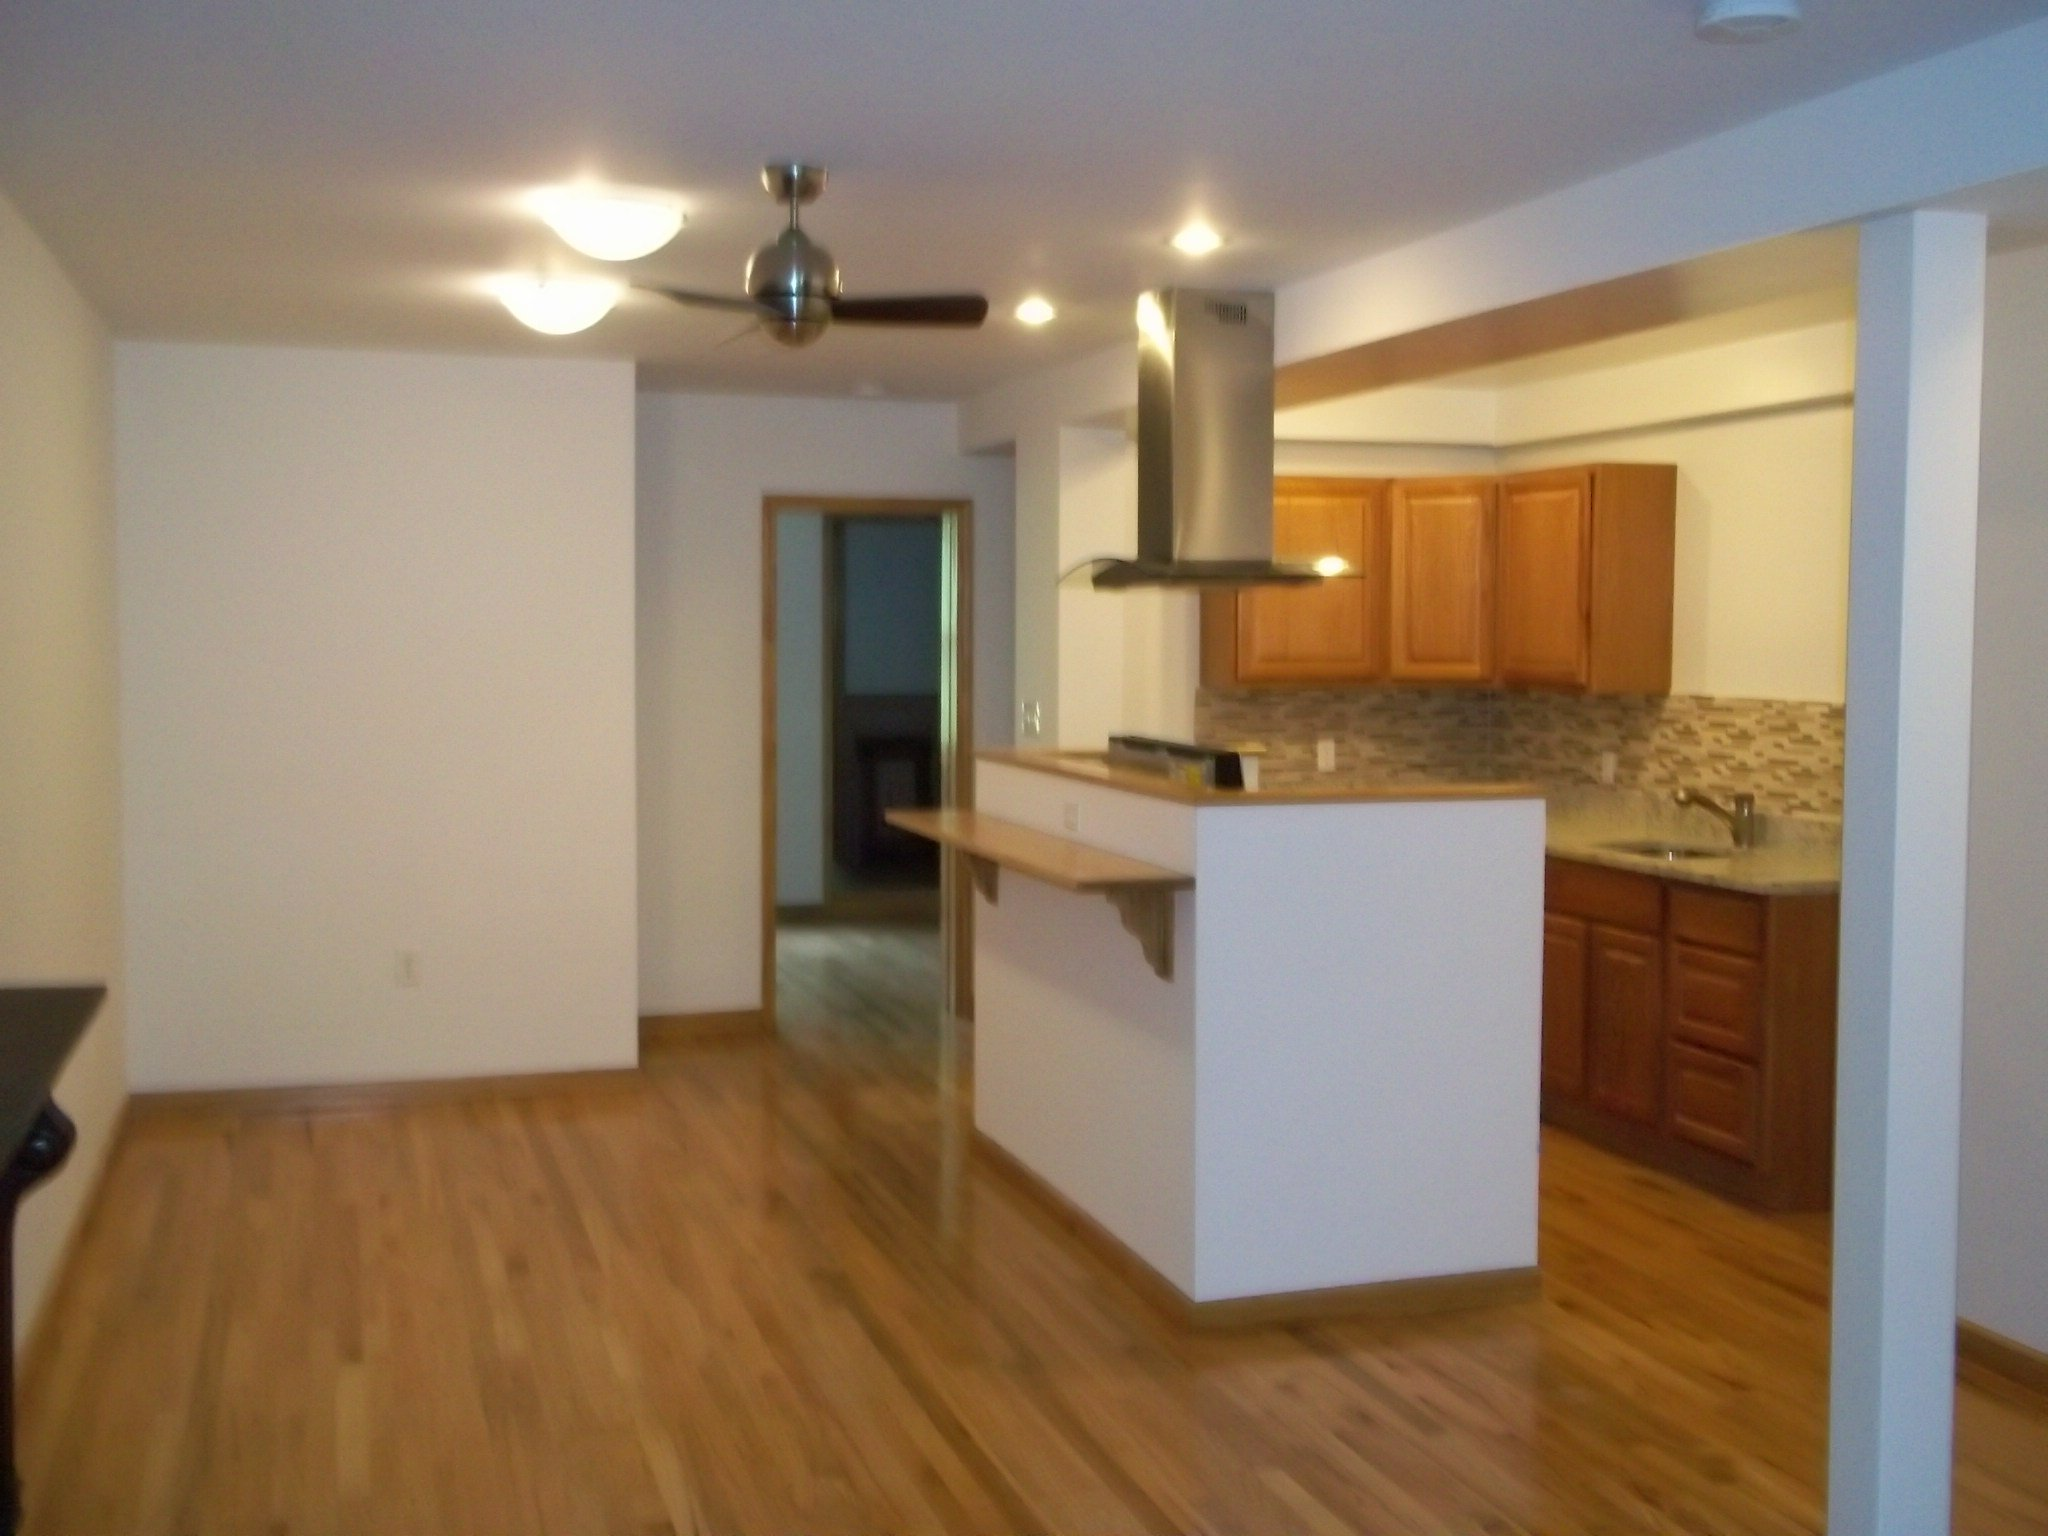 Stuyvesant heights 1 bedroom apartment for rent brooklyn for 1 bedroom apartment for rent